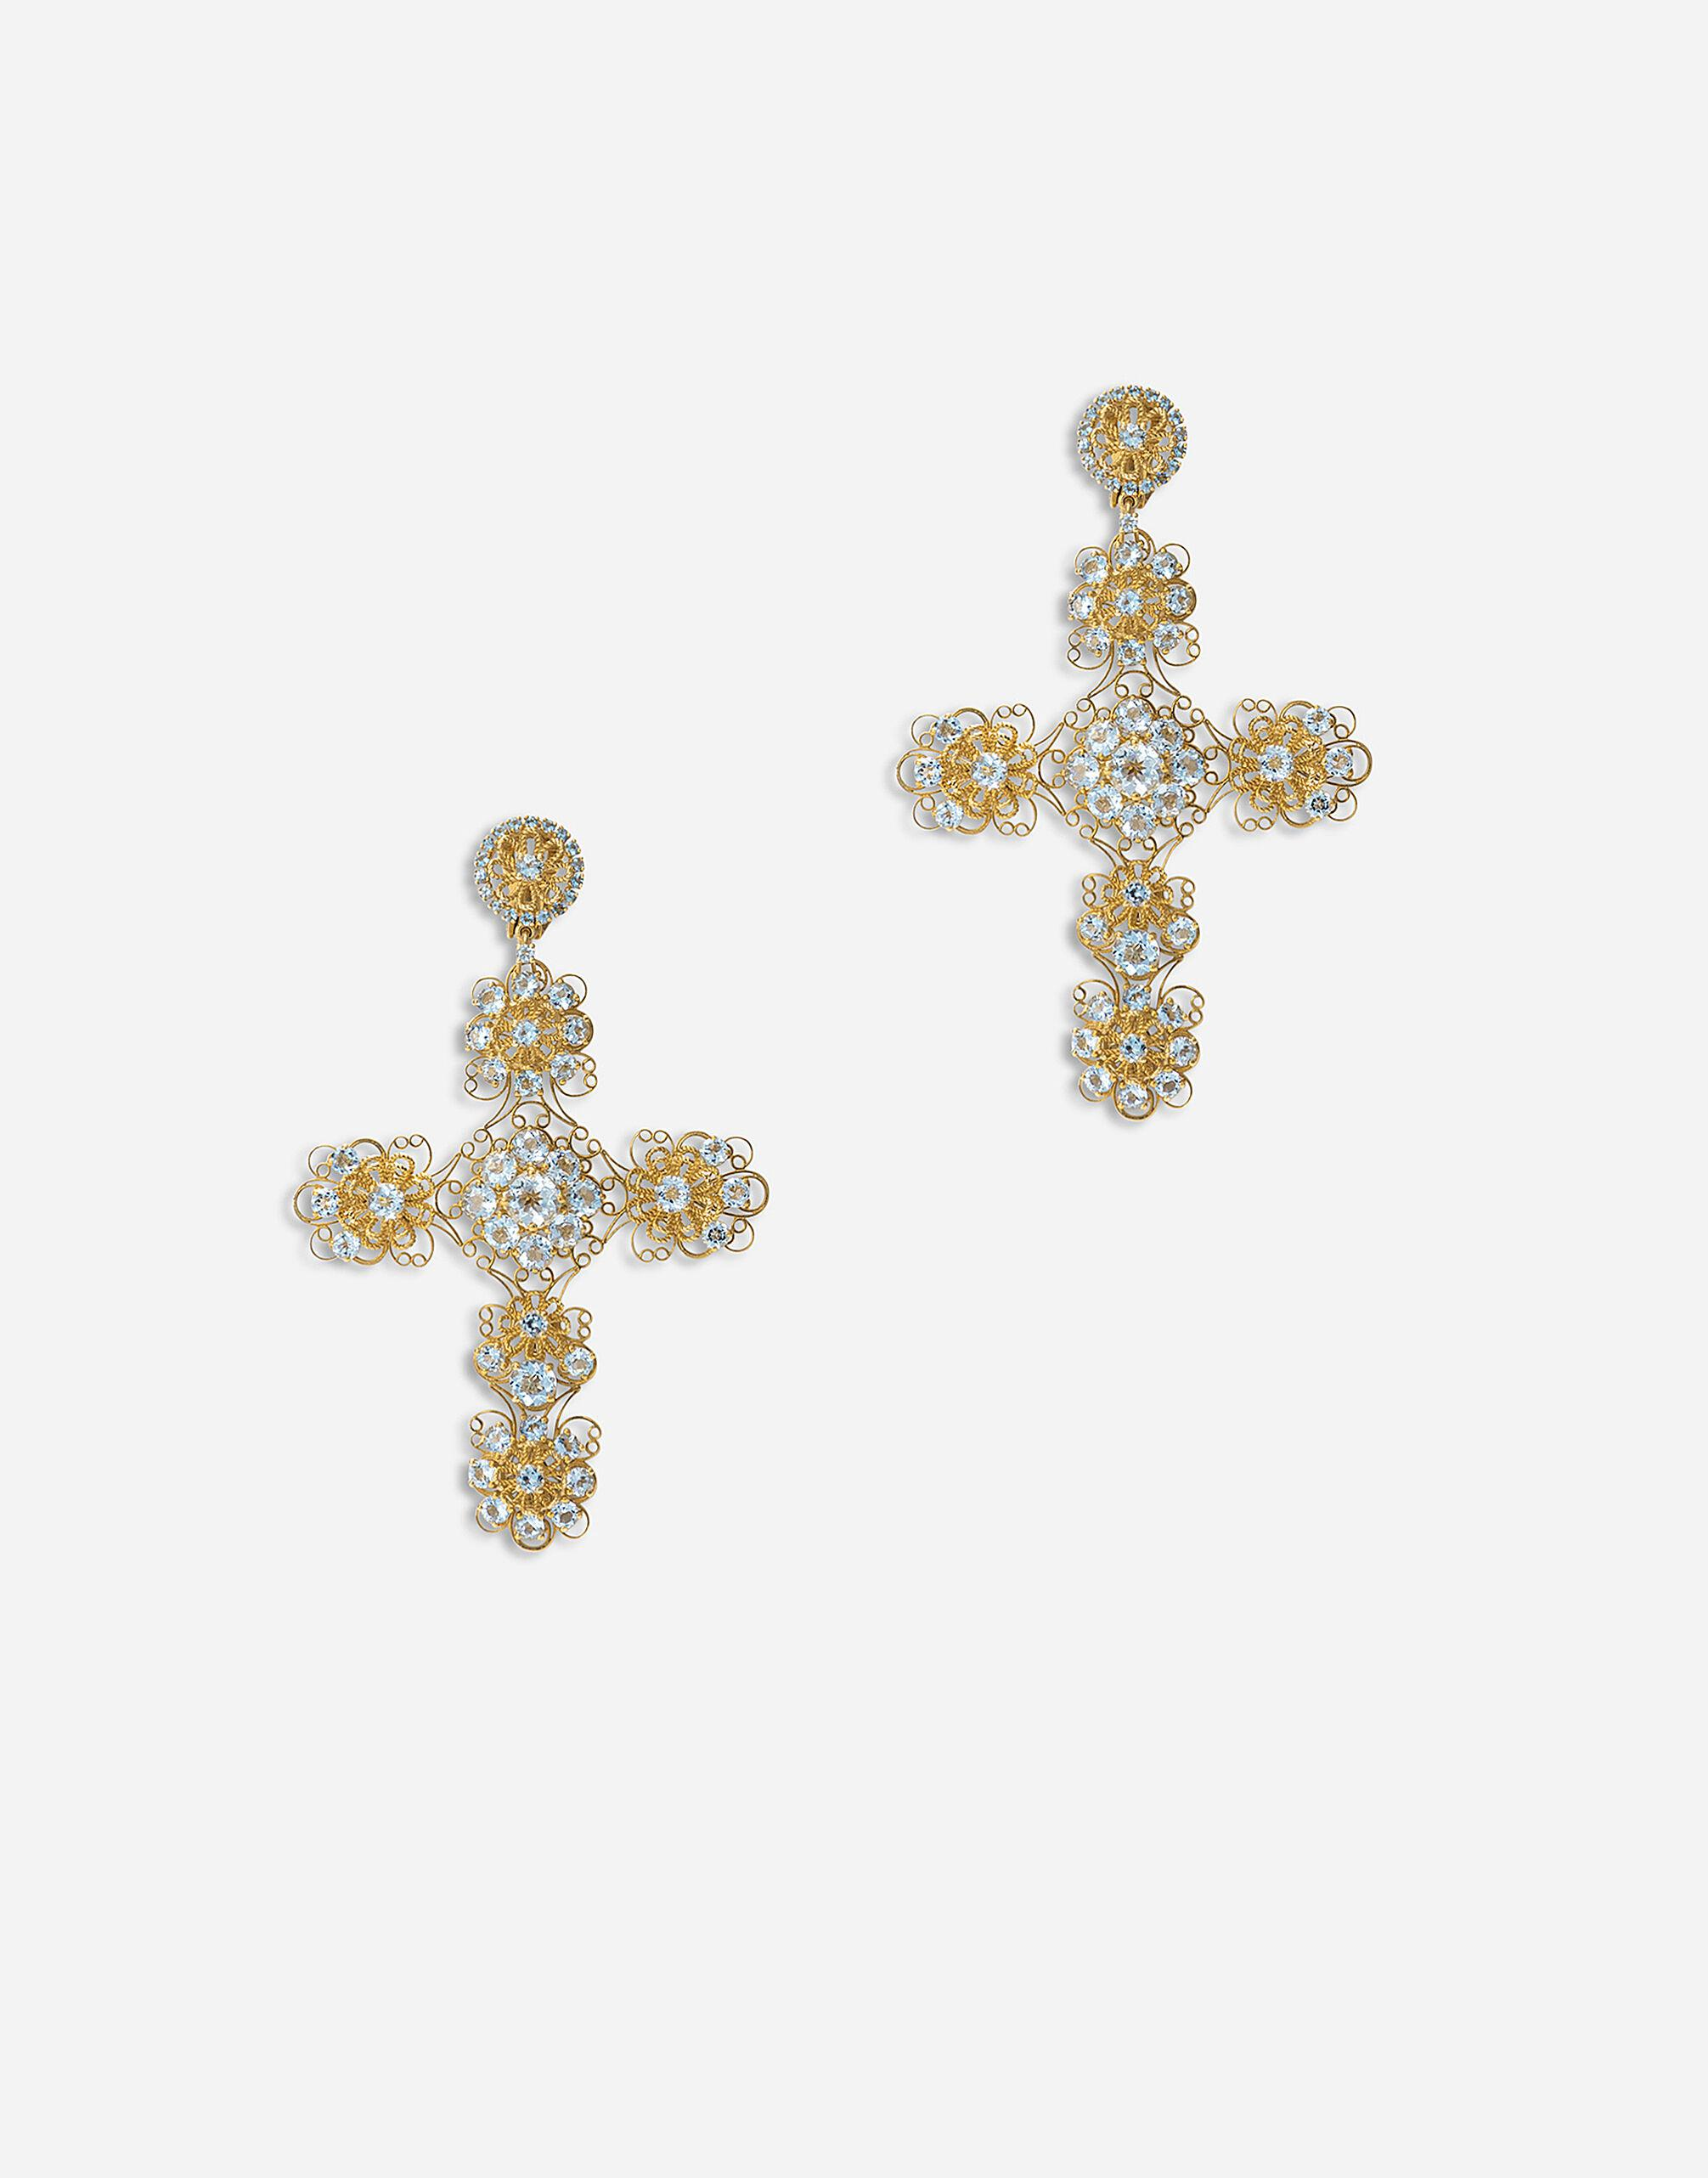 Pizzo earrings in yellow 18kt gold with aquamarines